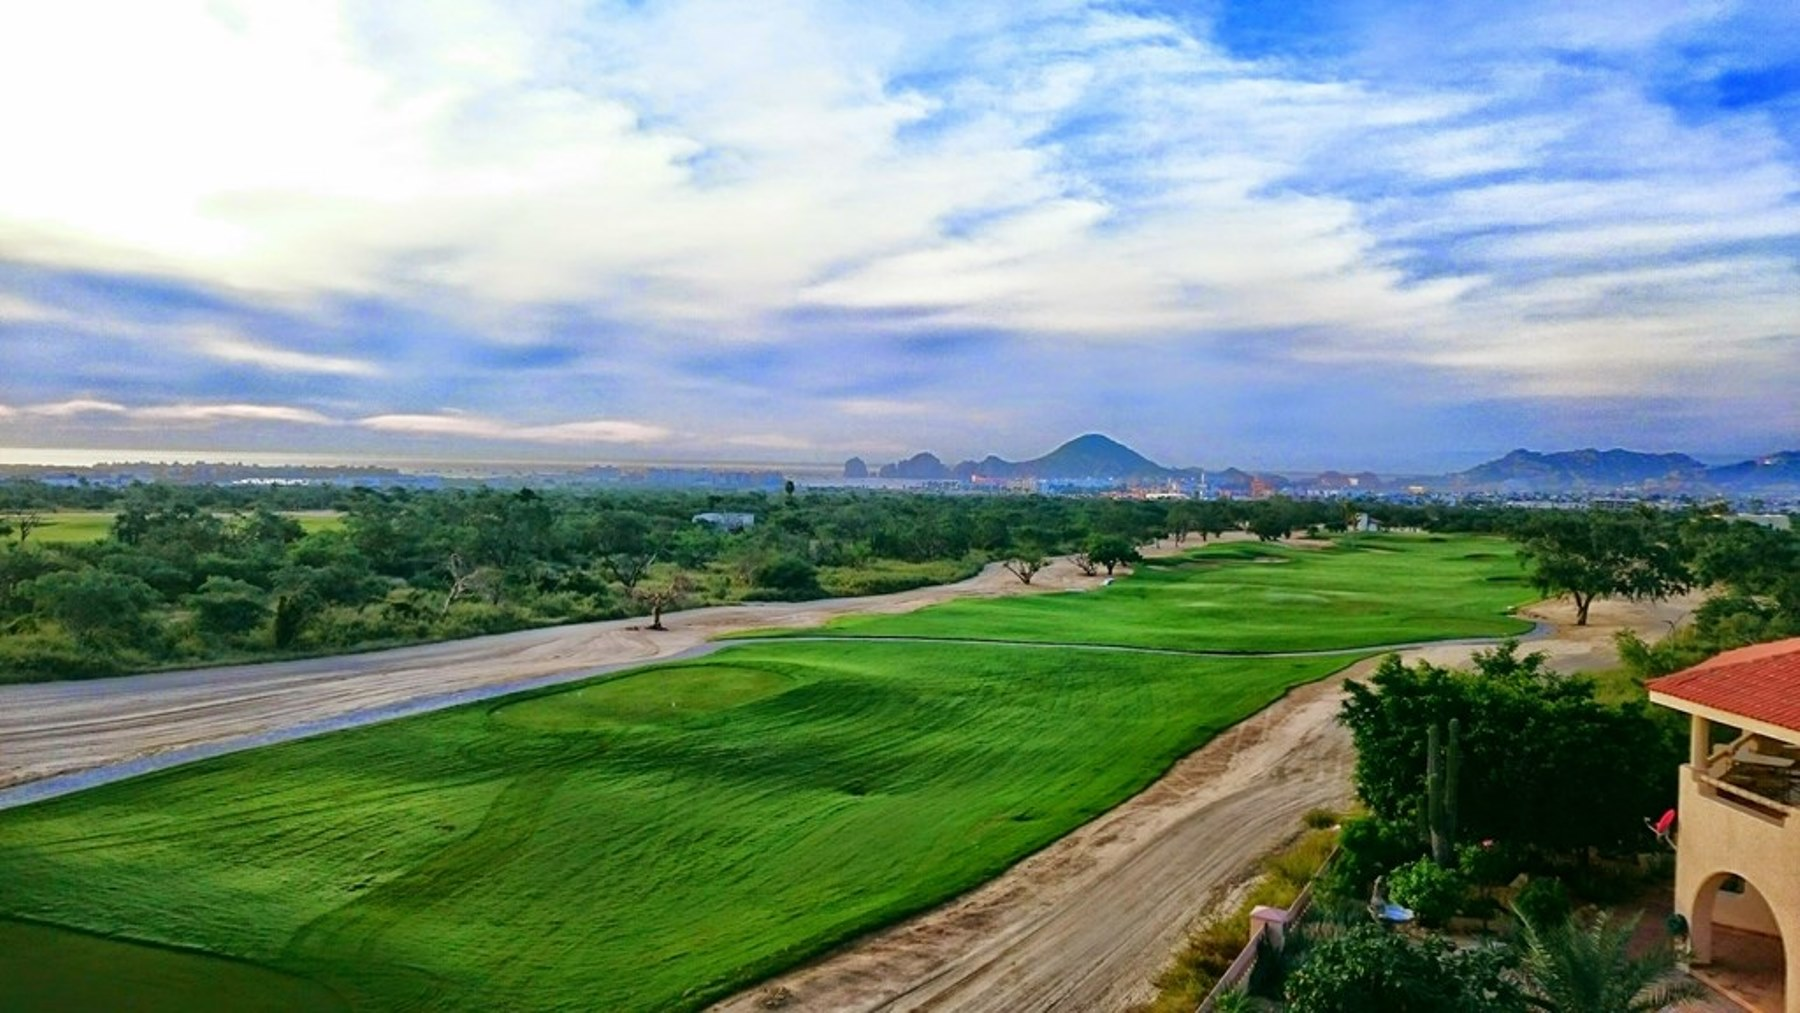 Land for Sale at Lote 162 Country Club Other Baja California Sur, Baja California Sur Mexico